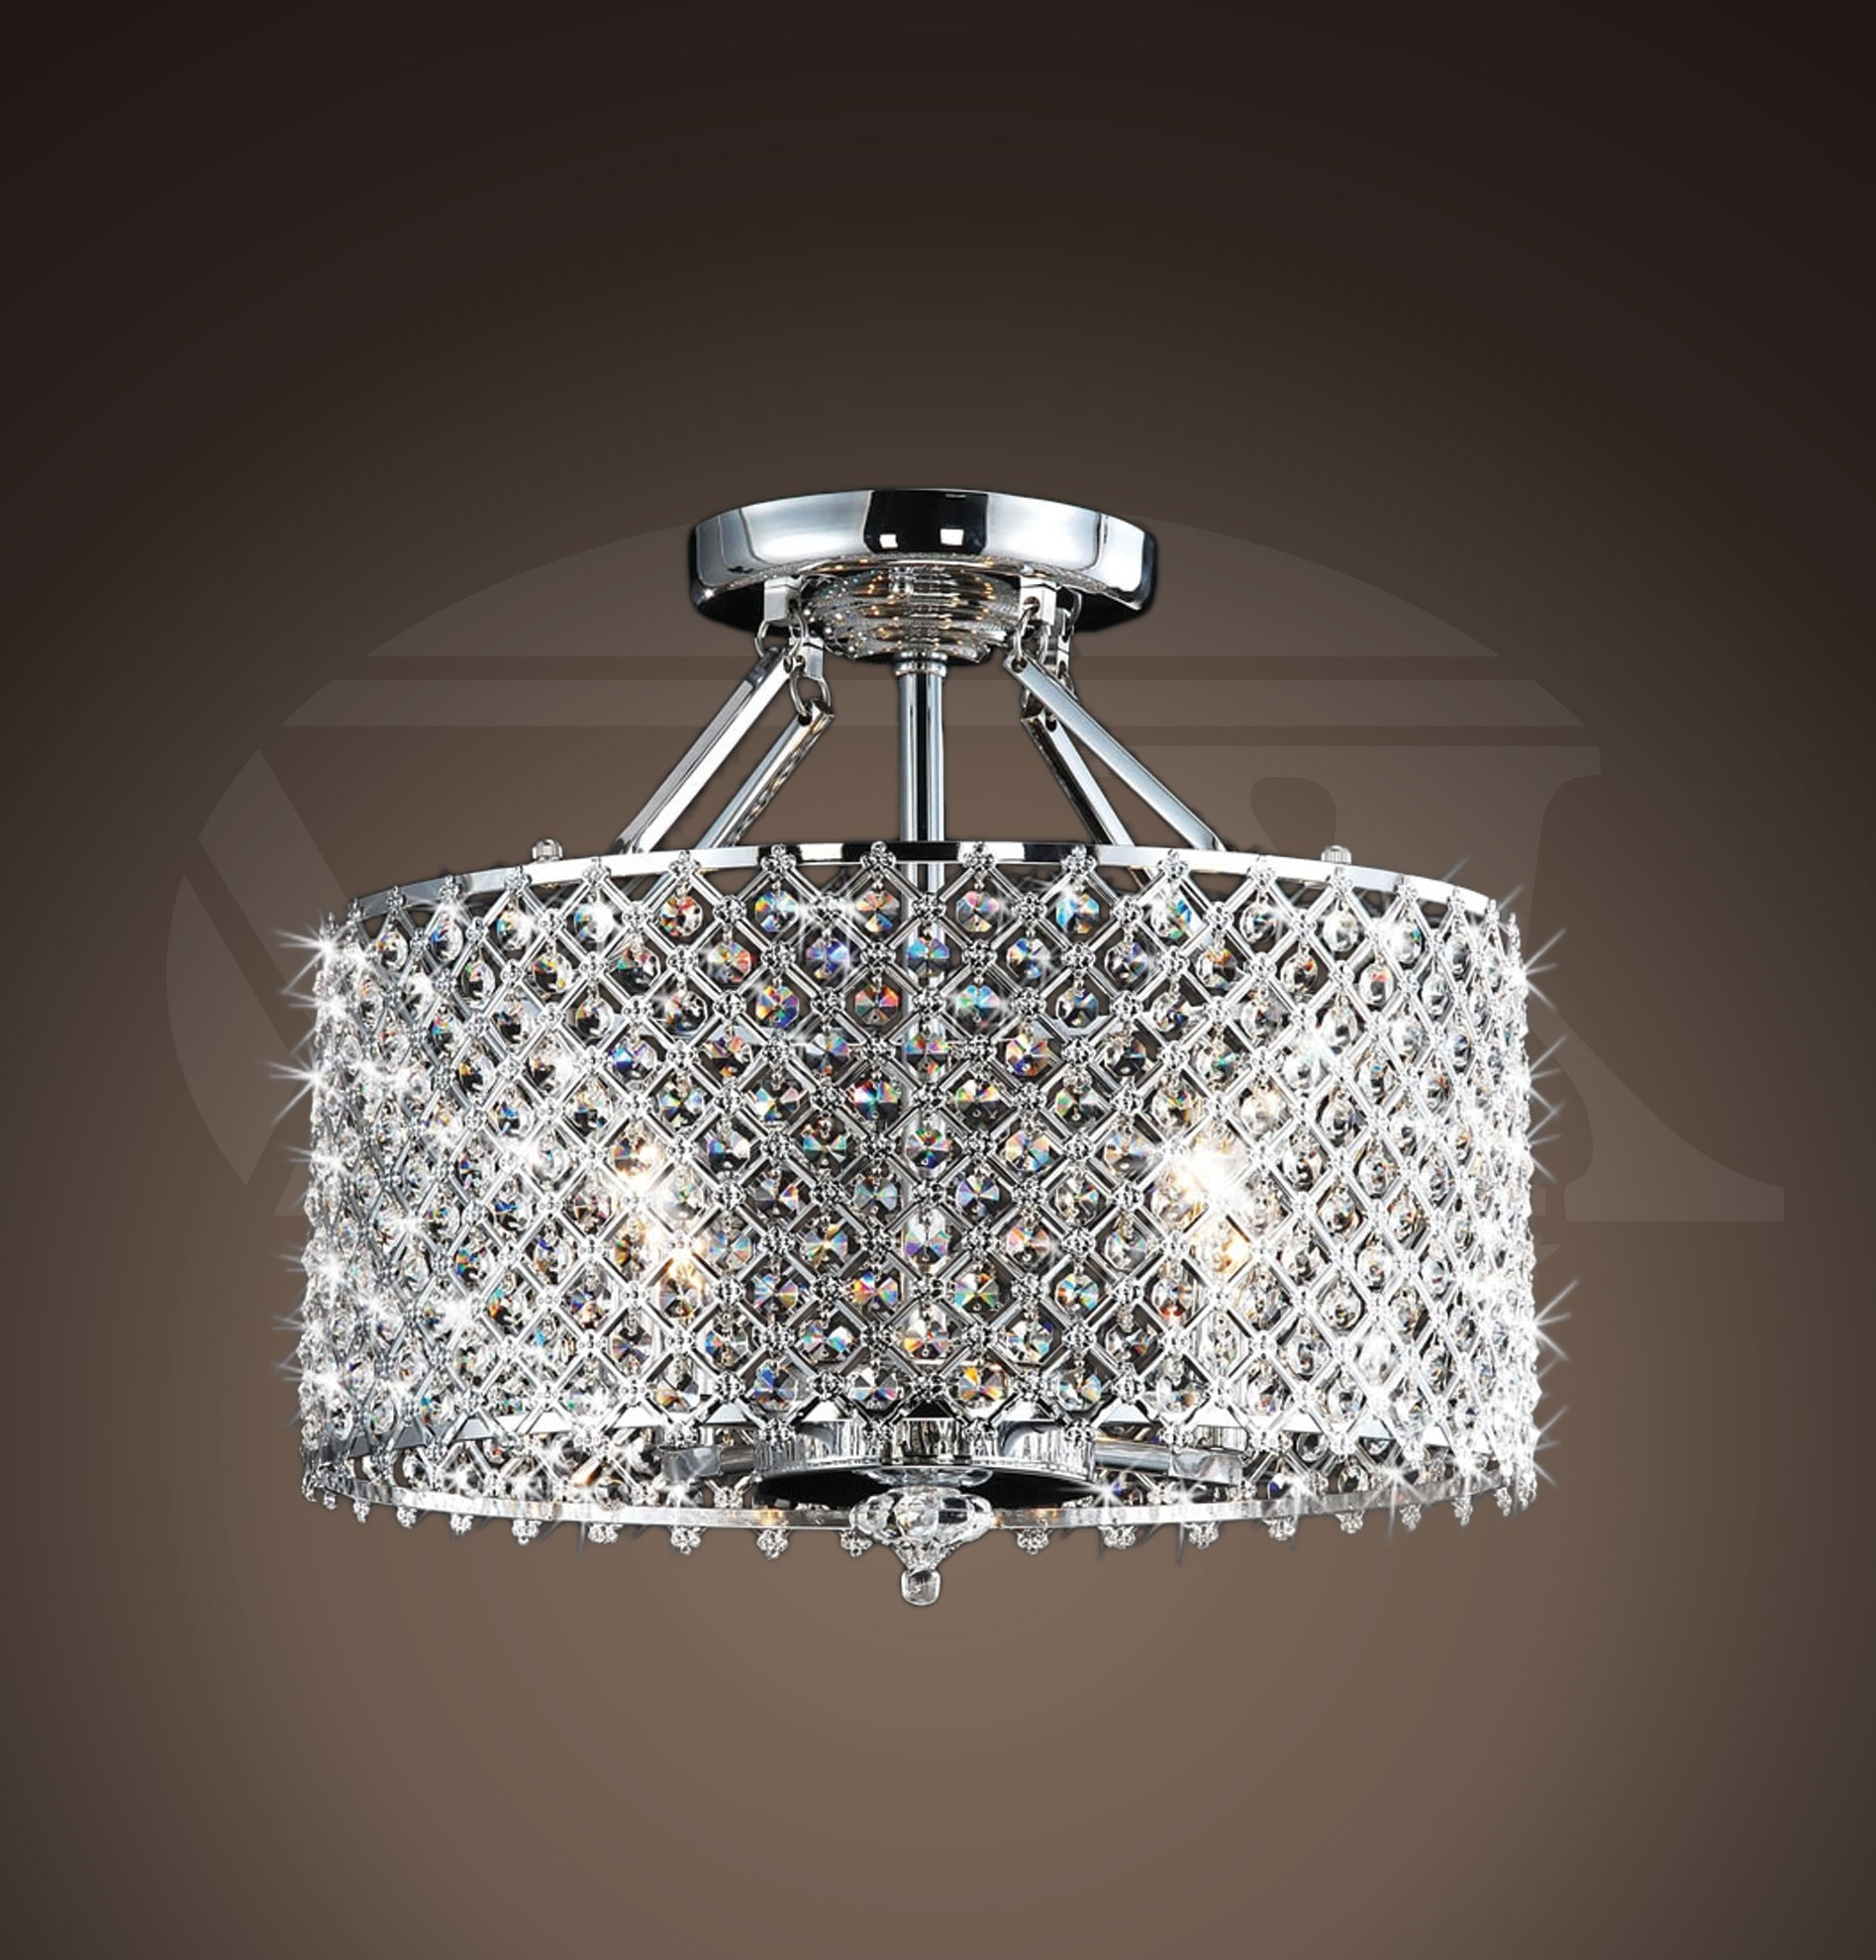 Wall Mount Crystal Chandeliers Throughout Best And Newest Helina Chrome And Crystal 4 Light Round Ceiling Flush Mount (View 15 of 20)